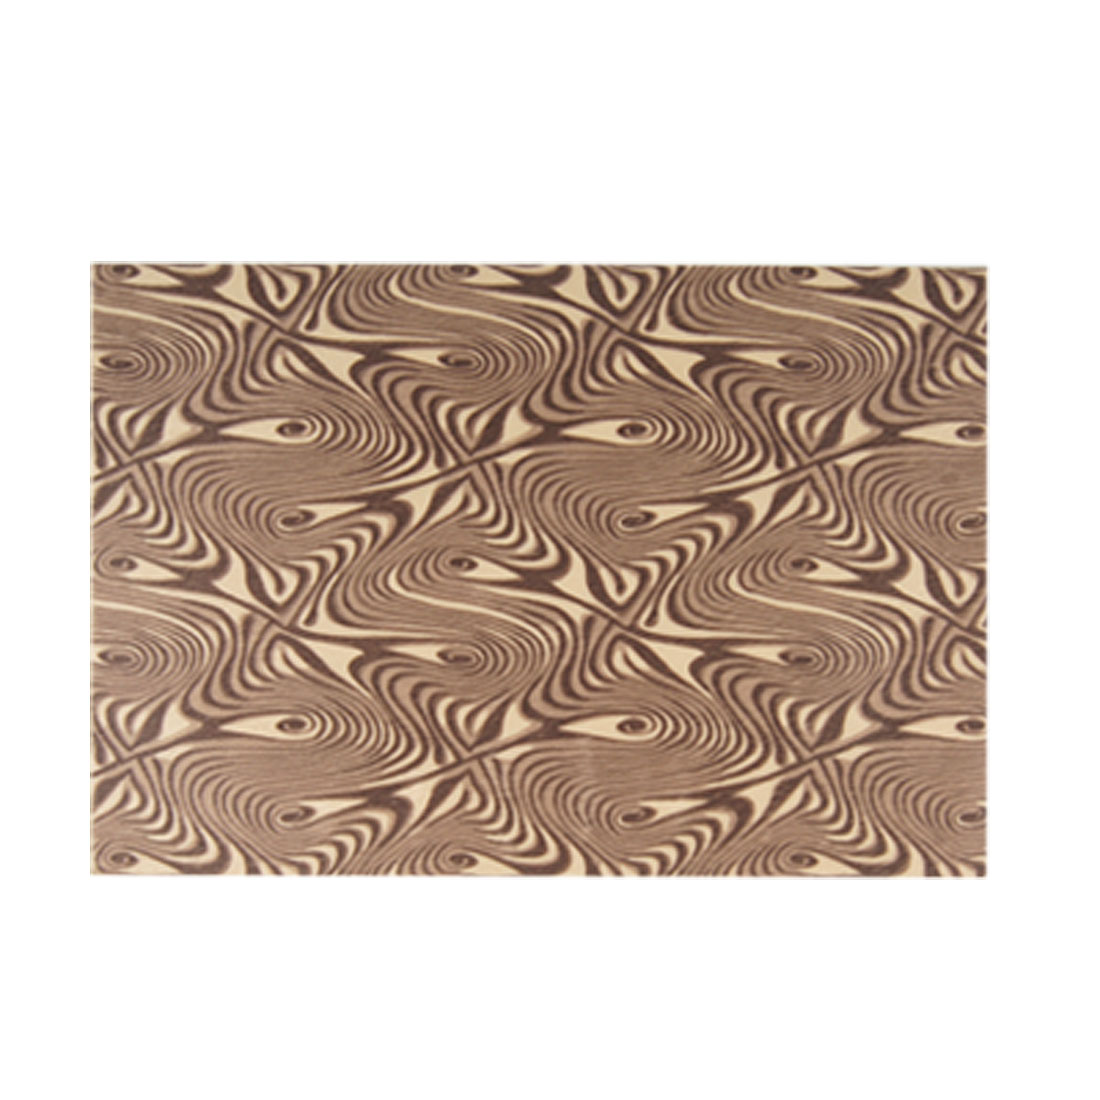 Cell Phone Decor Fingerprints Pattern Brown Plush Fabric Adhesive Sticker